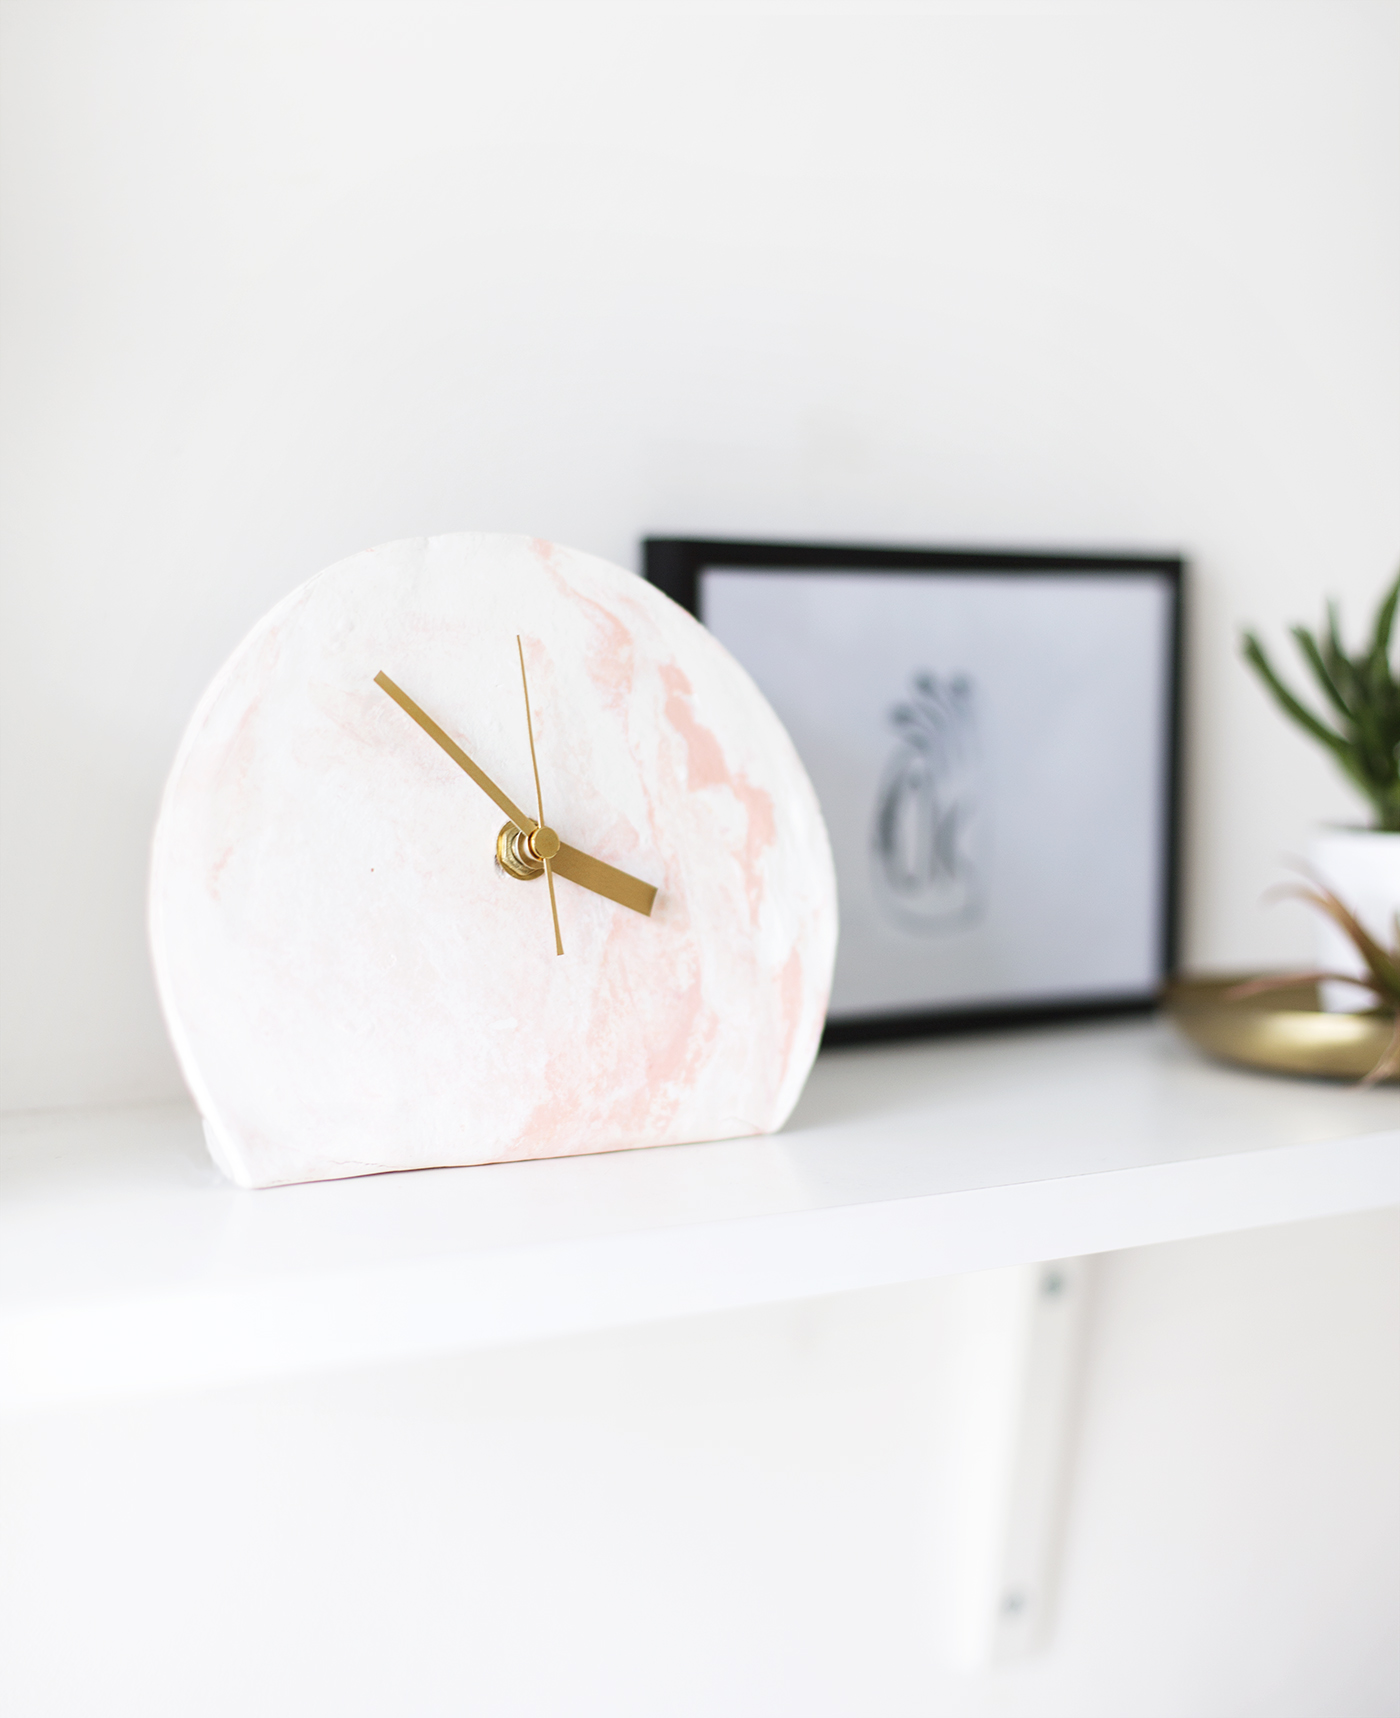 DIY marble clay clock